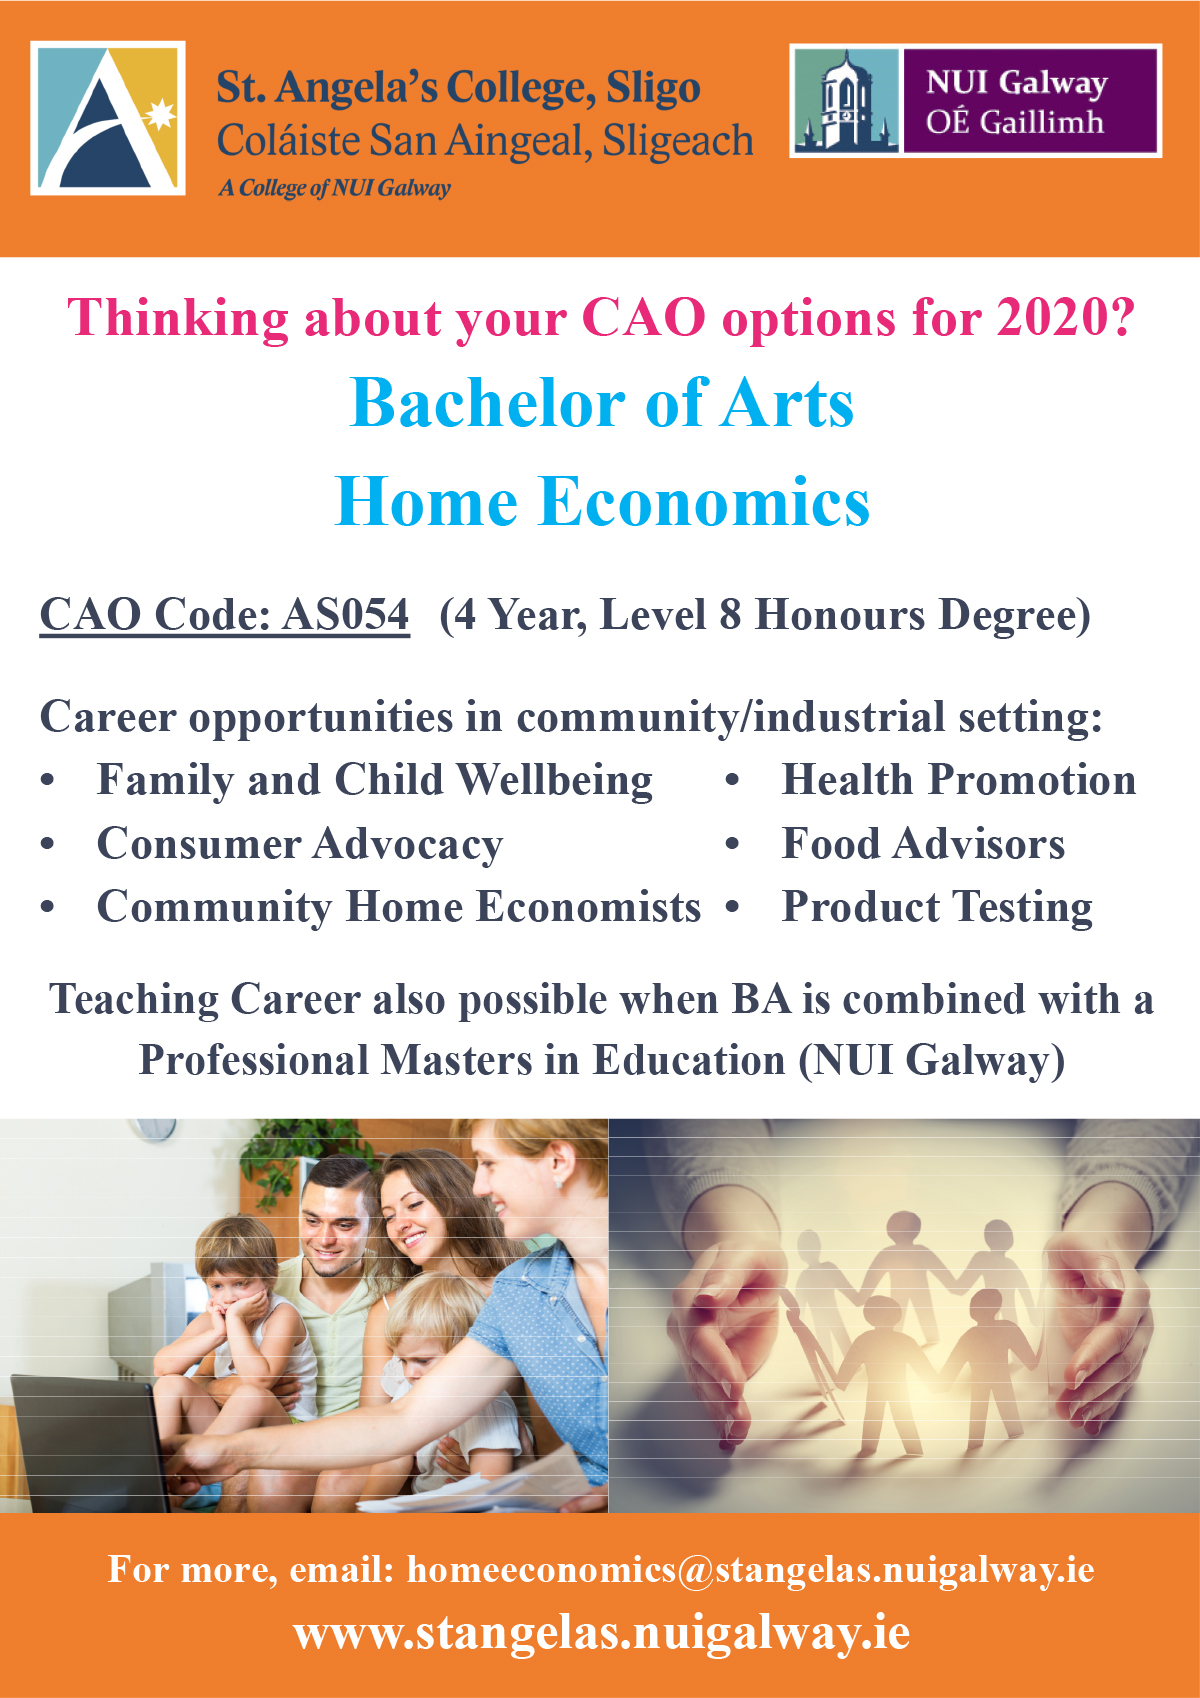 Bachelor of Arts Home Economics – August 2019 – quarter page ad.